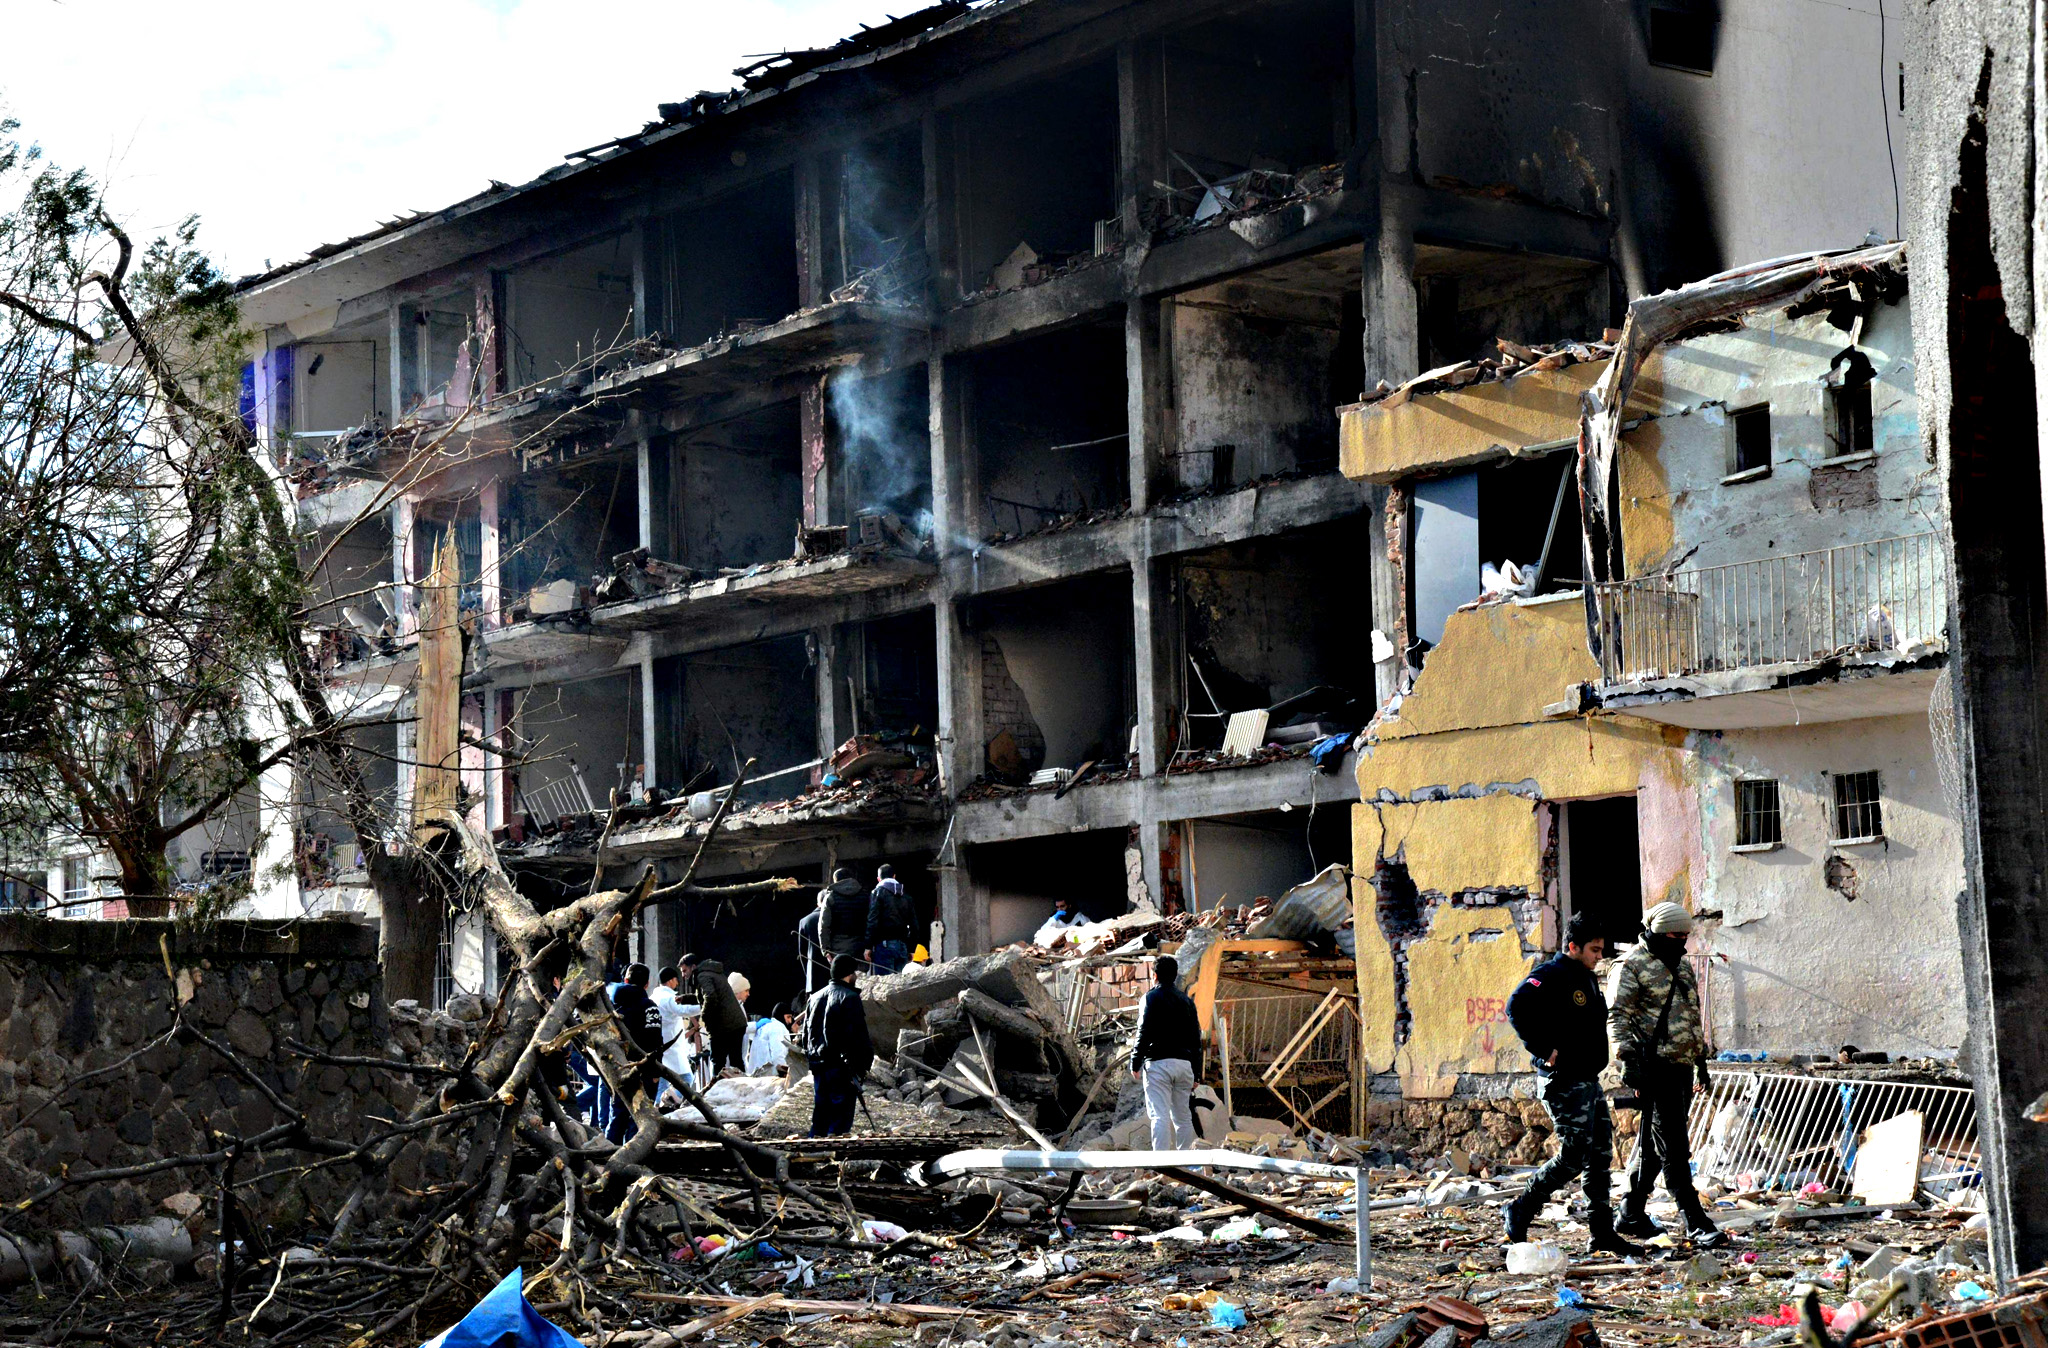 Turkish police search through the wreckage of a blast damaged building on January 14, 2016 in Diyarbakir. Six people died and 39 others were wounded in a car bomb attack blamed on Kurdish rebels that ripped through a police station and an adjacent housing complex for officers and their families in southeastern Turkey, security forces said on January 14, updating an earlier toll of five.